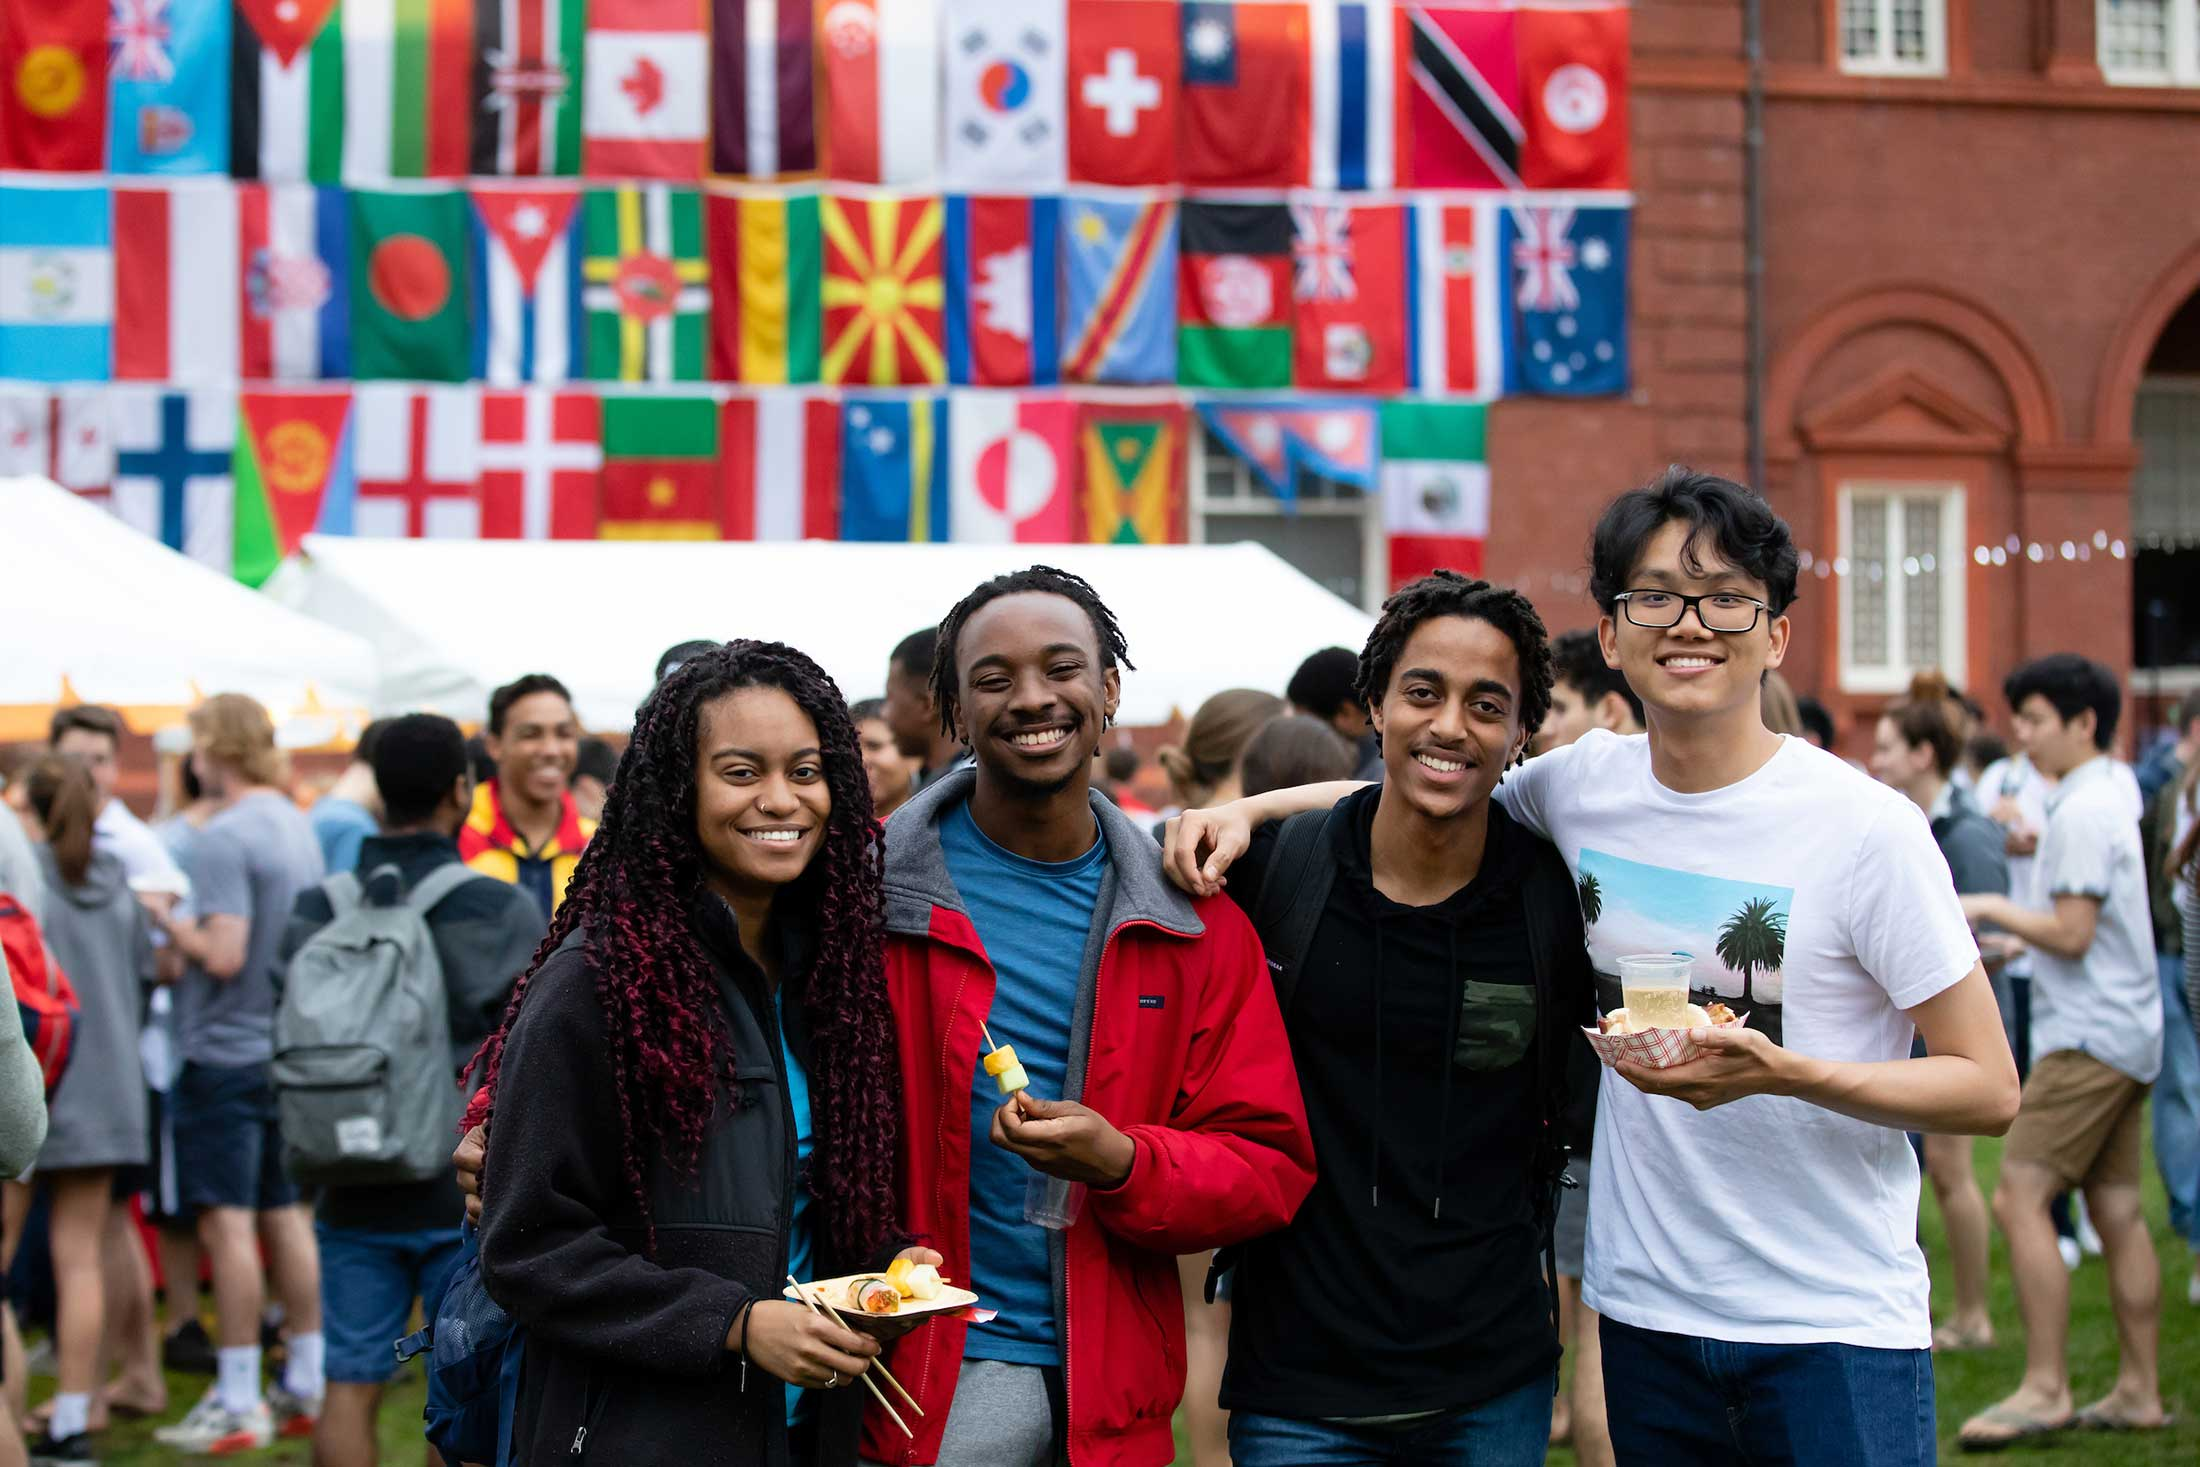 Students gather at the annual city streets festival